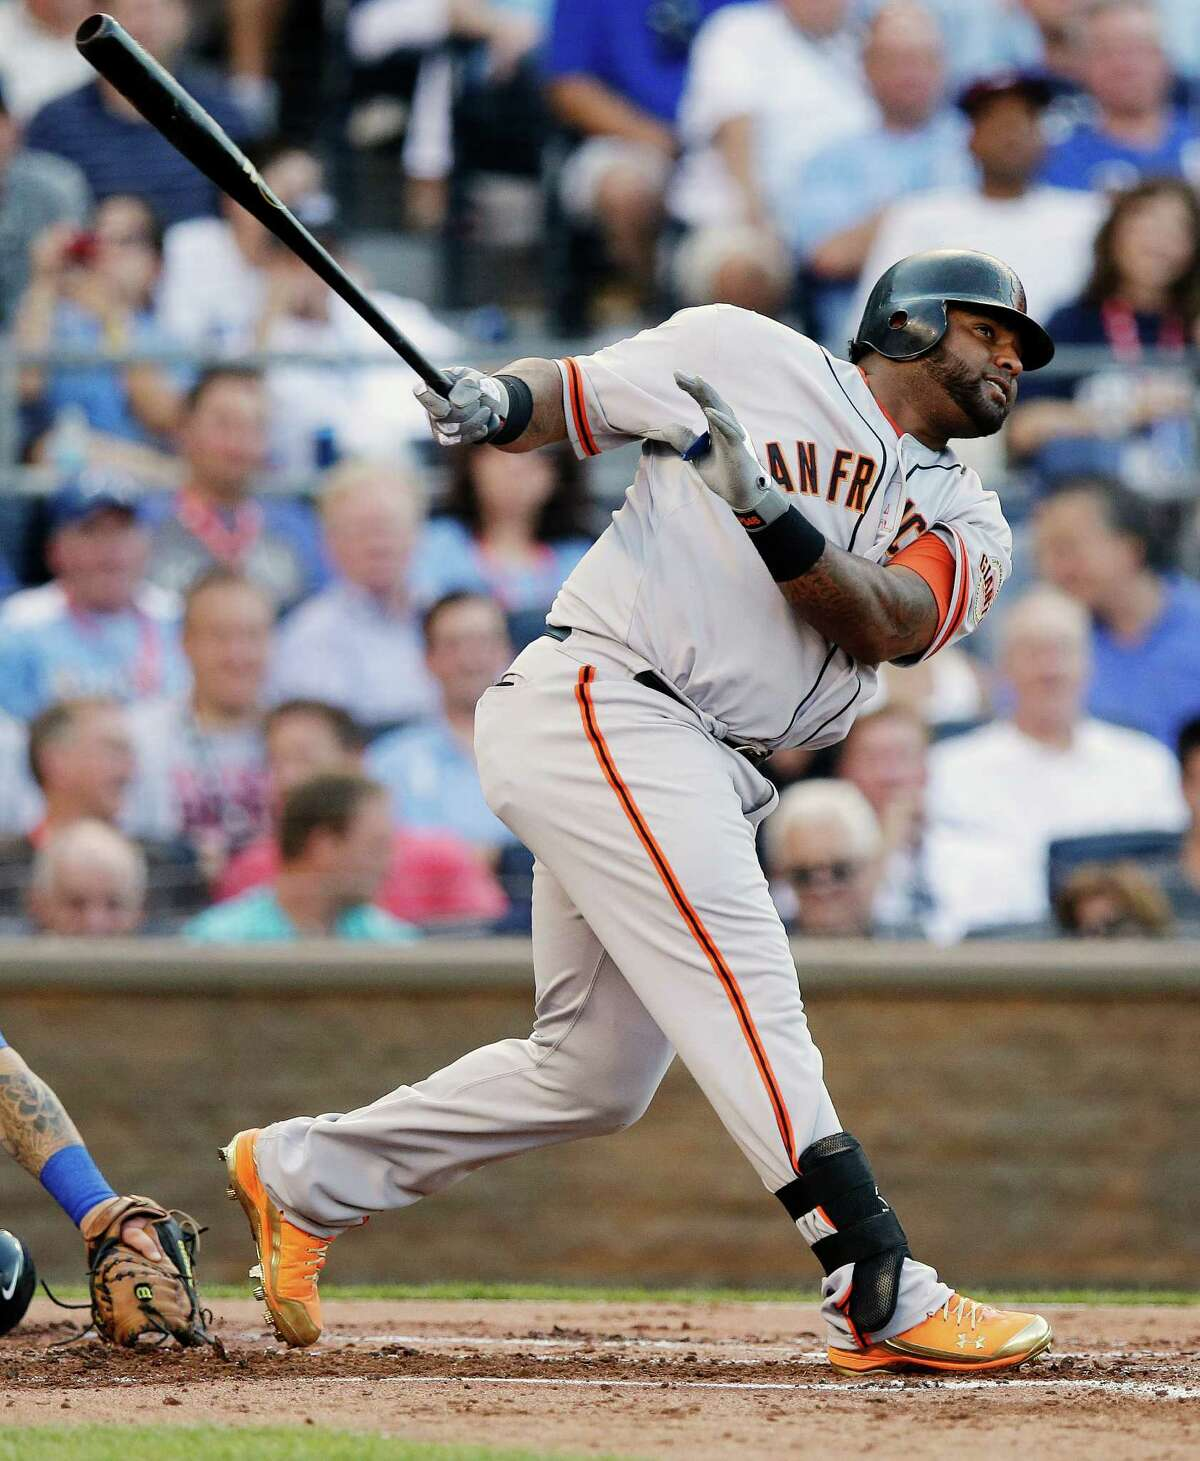 The Giants' Pablo Sandoval had a bases-loaded triple in the first that was key in helping the National League set the stage for a blowout win.